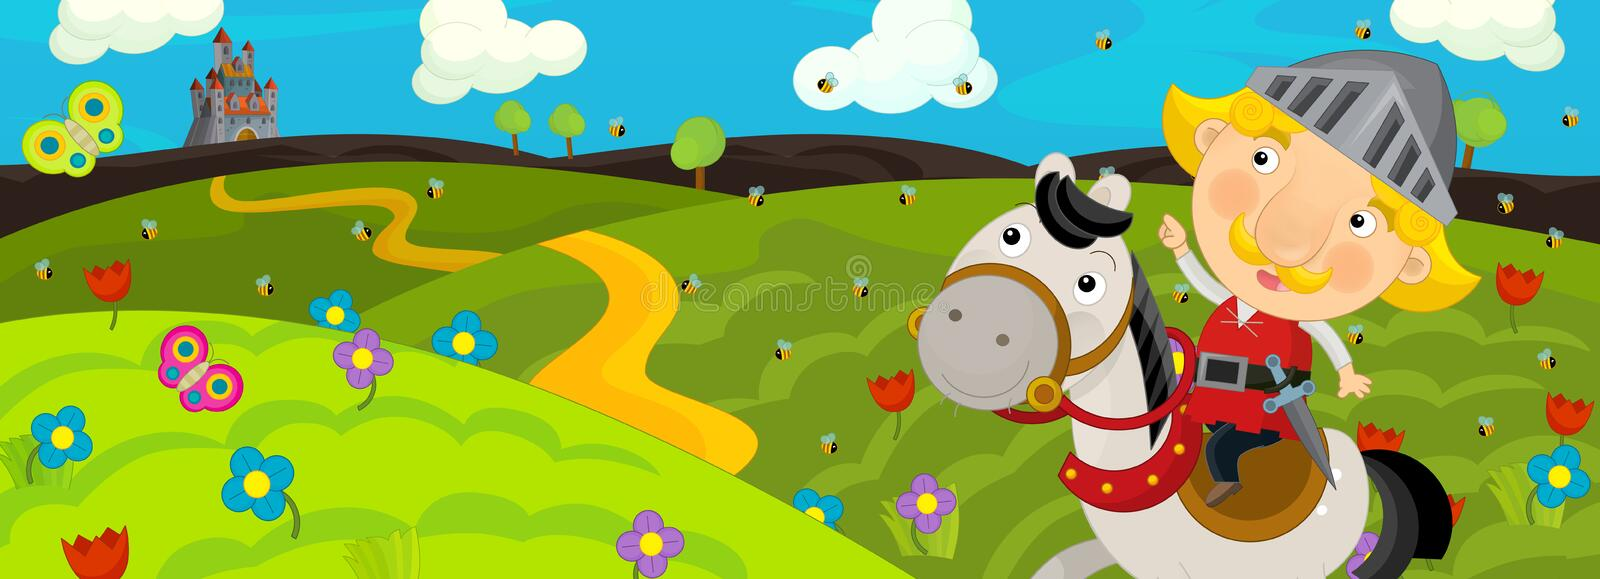 Cartoon scene of a knight traveling to a beautiful castle on a horse. Happy and funny traditional illustration for children - scene for different usage vector illustration